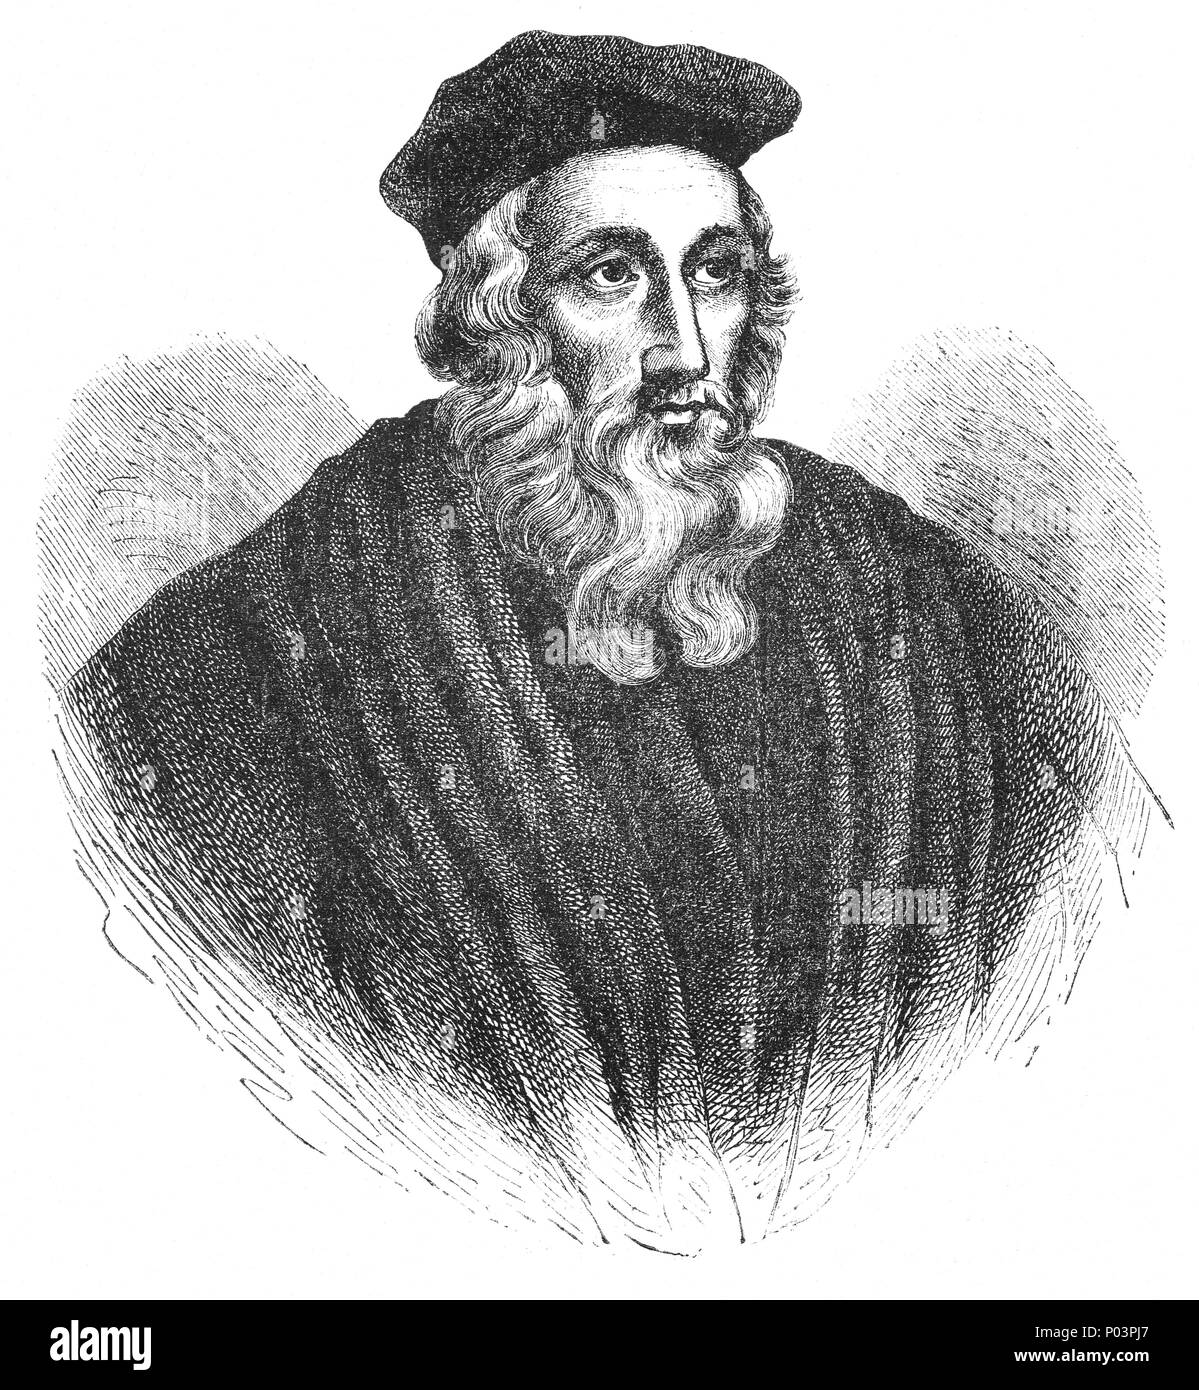 A portrait of John Wycliffe ( 1320-1384), an English scholastic philosopher, theologian, Biblical translator, reformer, English priest, and a seminary professor at the University of Oxford. He was an influential dissident within the Roman Catholic priesthood during the 14th century and is considered an important predecessor to Protestantism. He was also an advocate for translation of the Bible into the vernacular. He completed a translation directly from the Vulgate into Middle English in the year 1382, now known as Wycliffe's Bible. - Stock Image